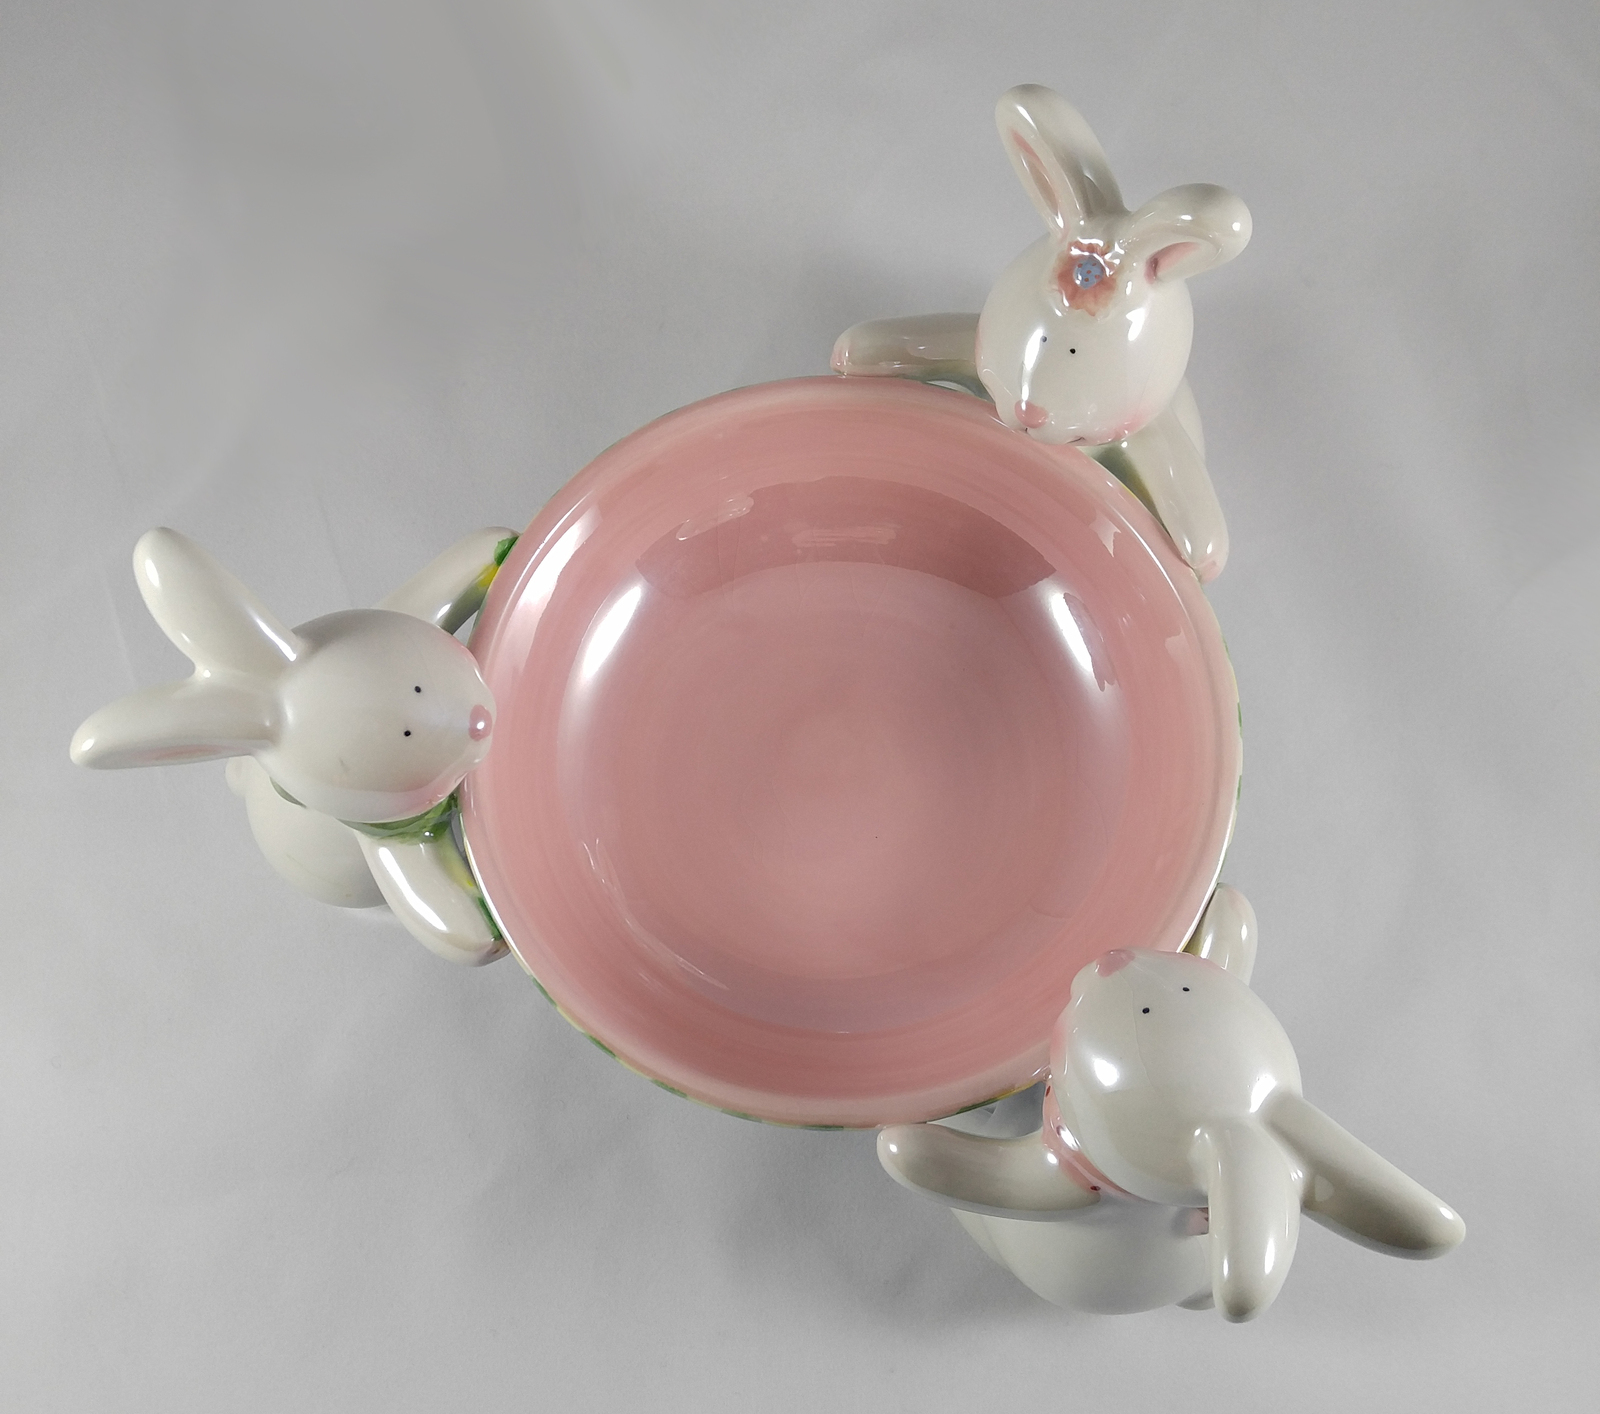 Rare Vintage Signed Lillian Vernon Easter Ceramic Bunnies Candy Dish